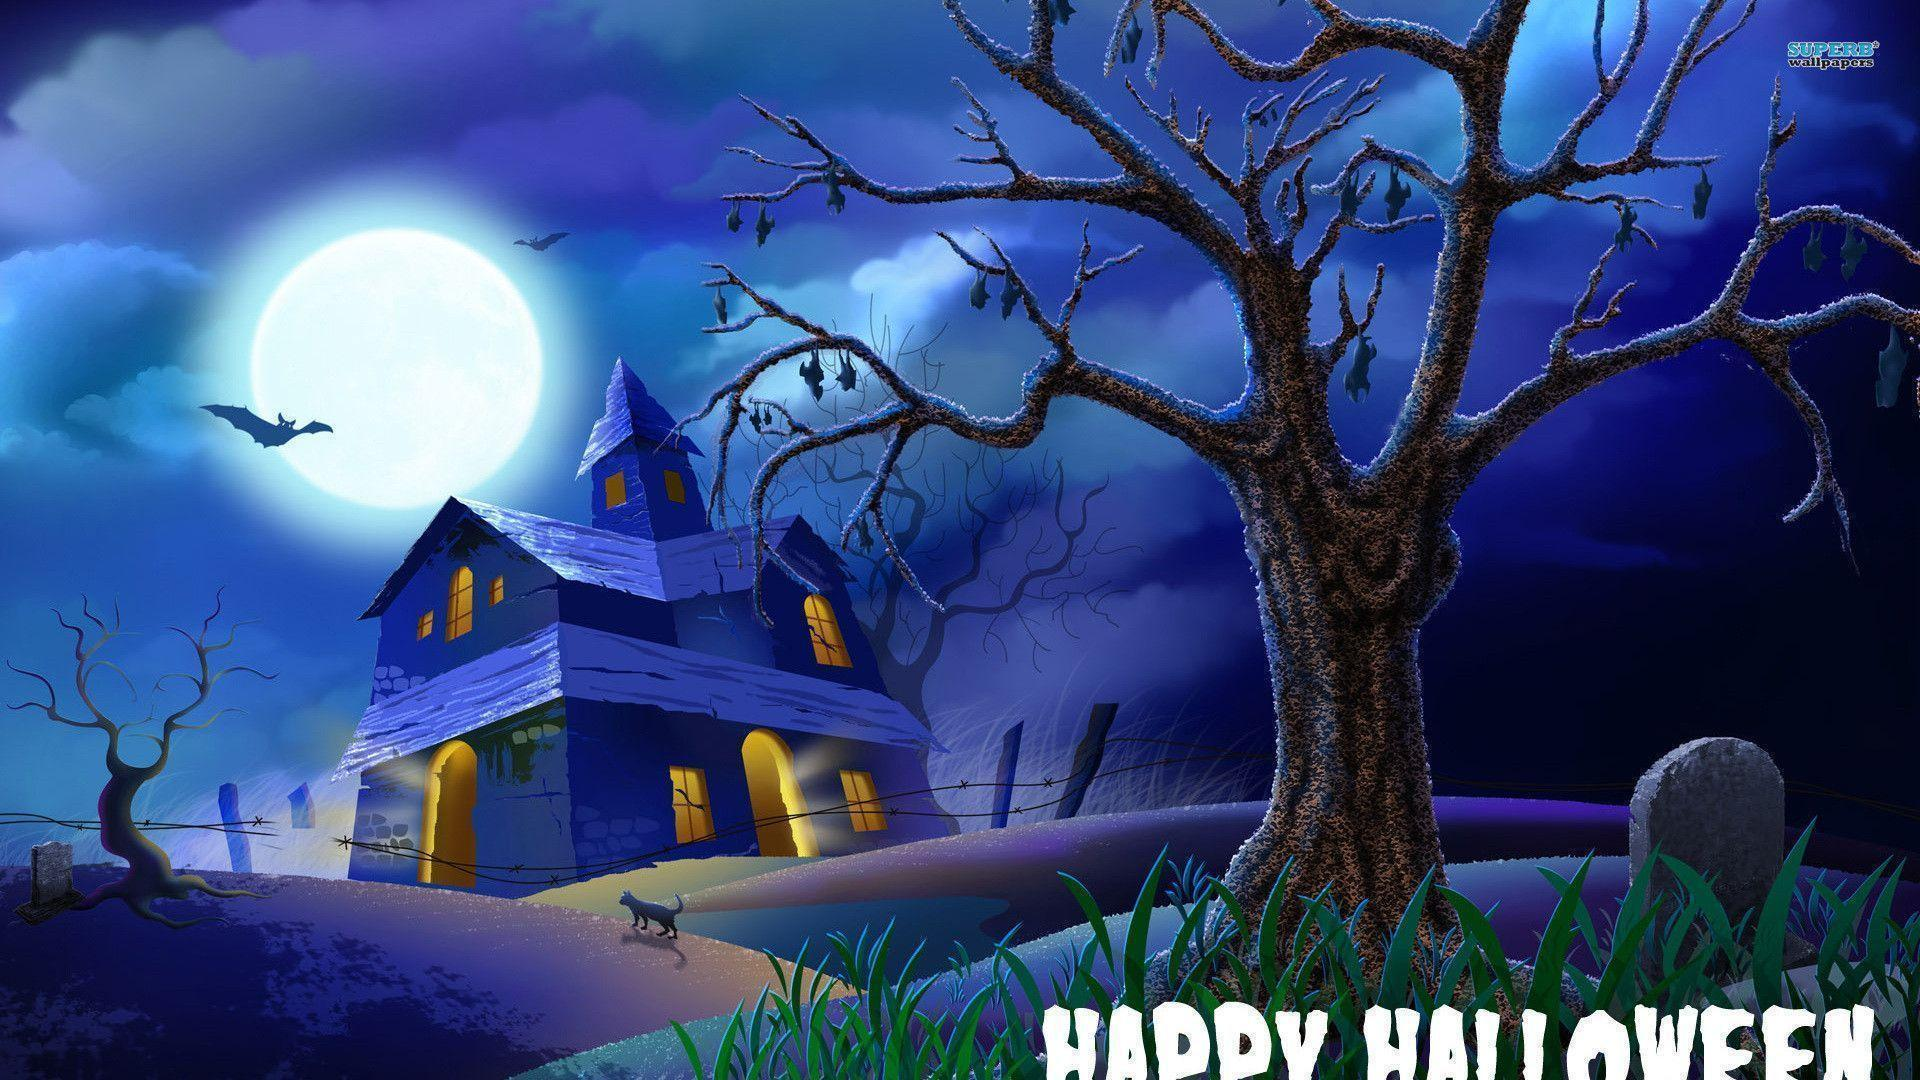 Halloween wallpaper - Holiday wallpapers - #